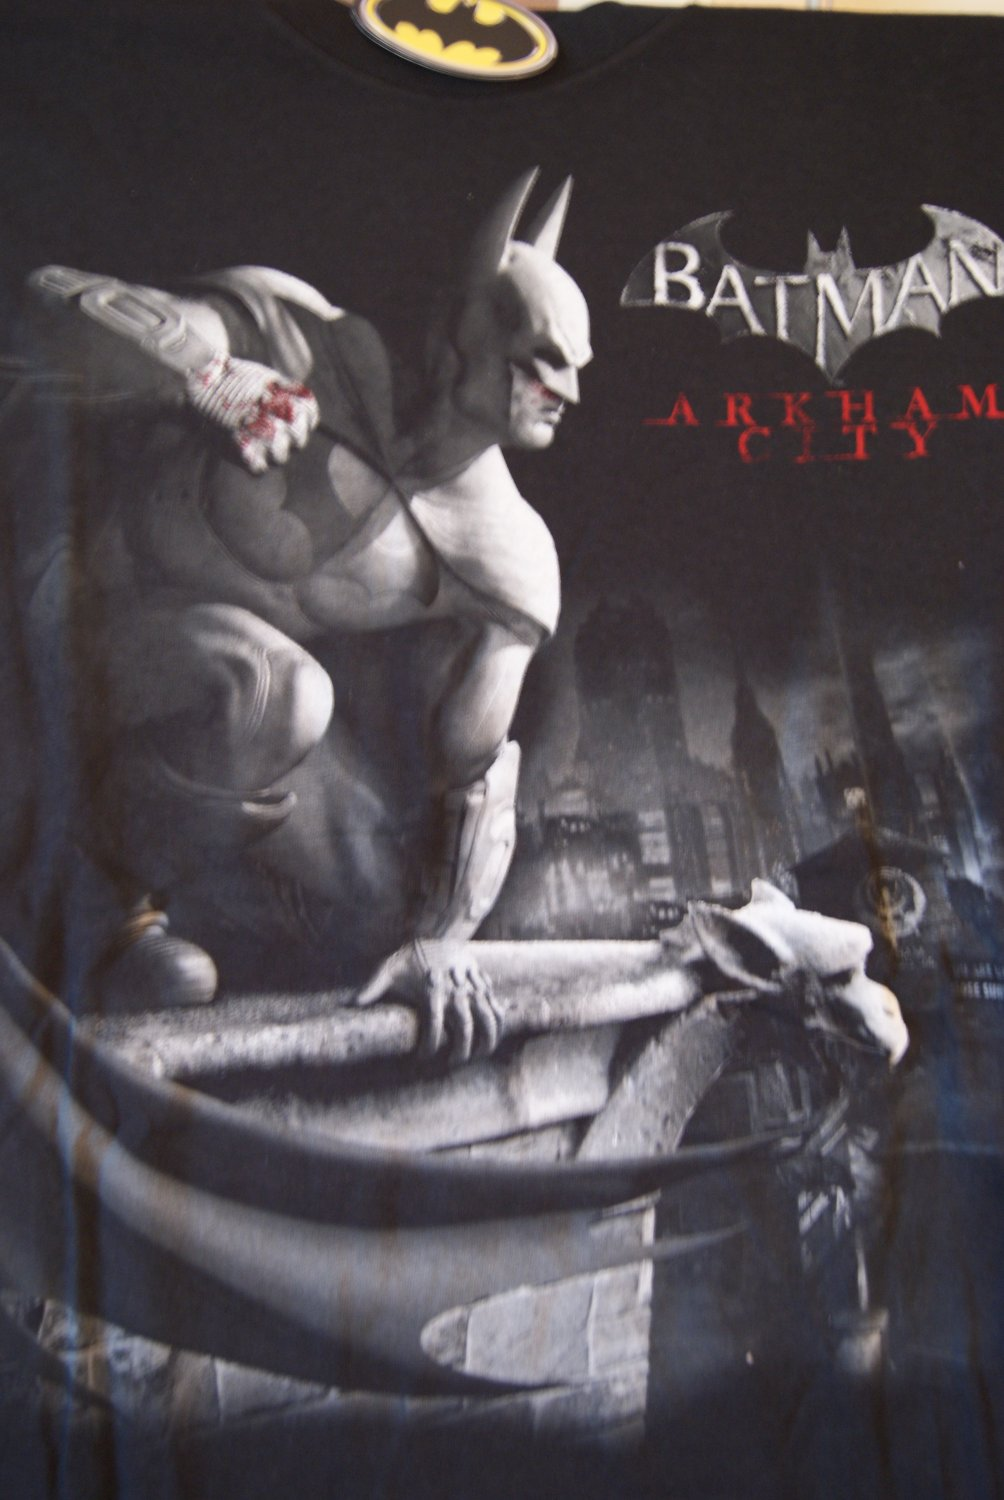 Batman Arkham City tee 2